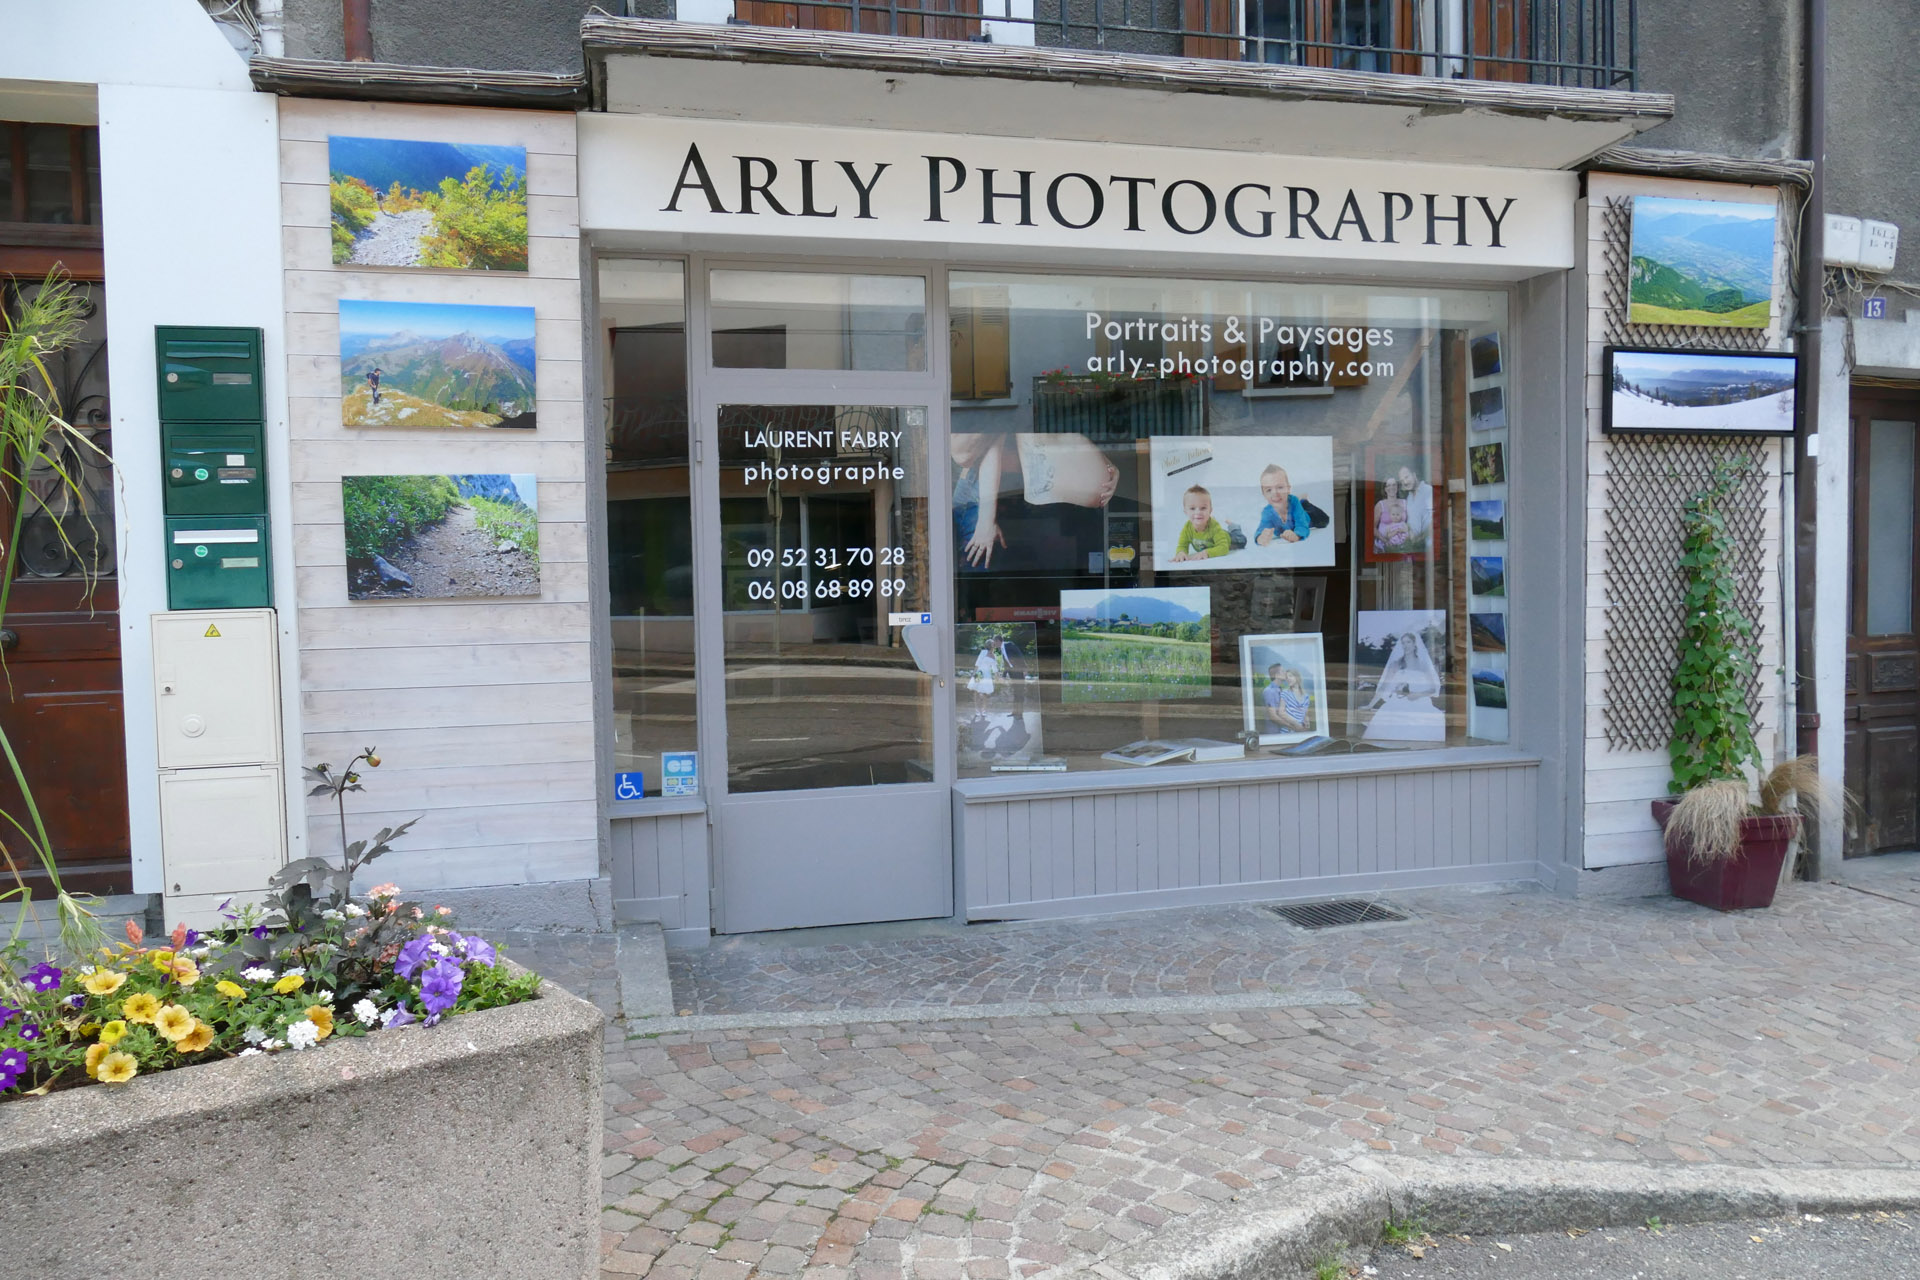 Studio ARLY PHOTOGRAPHY